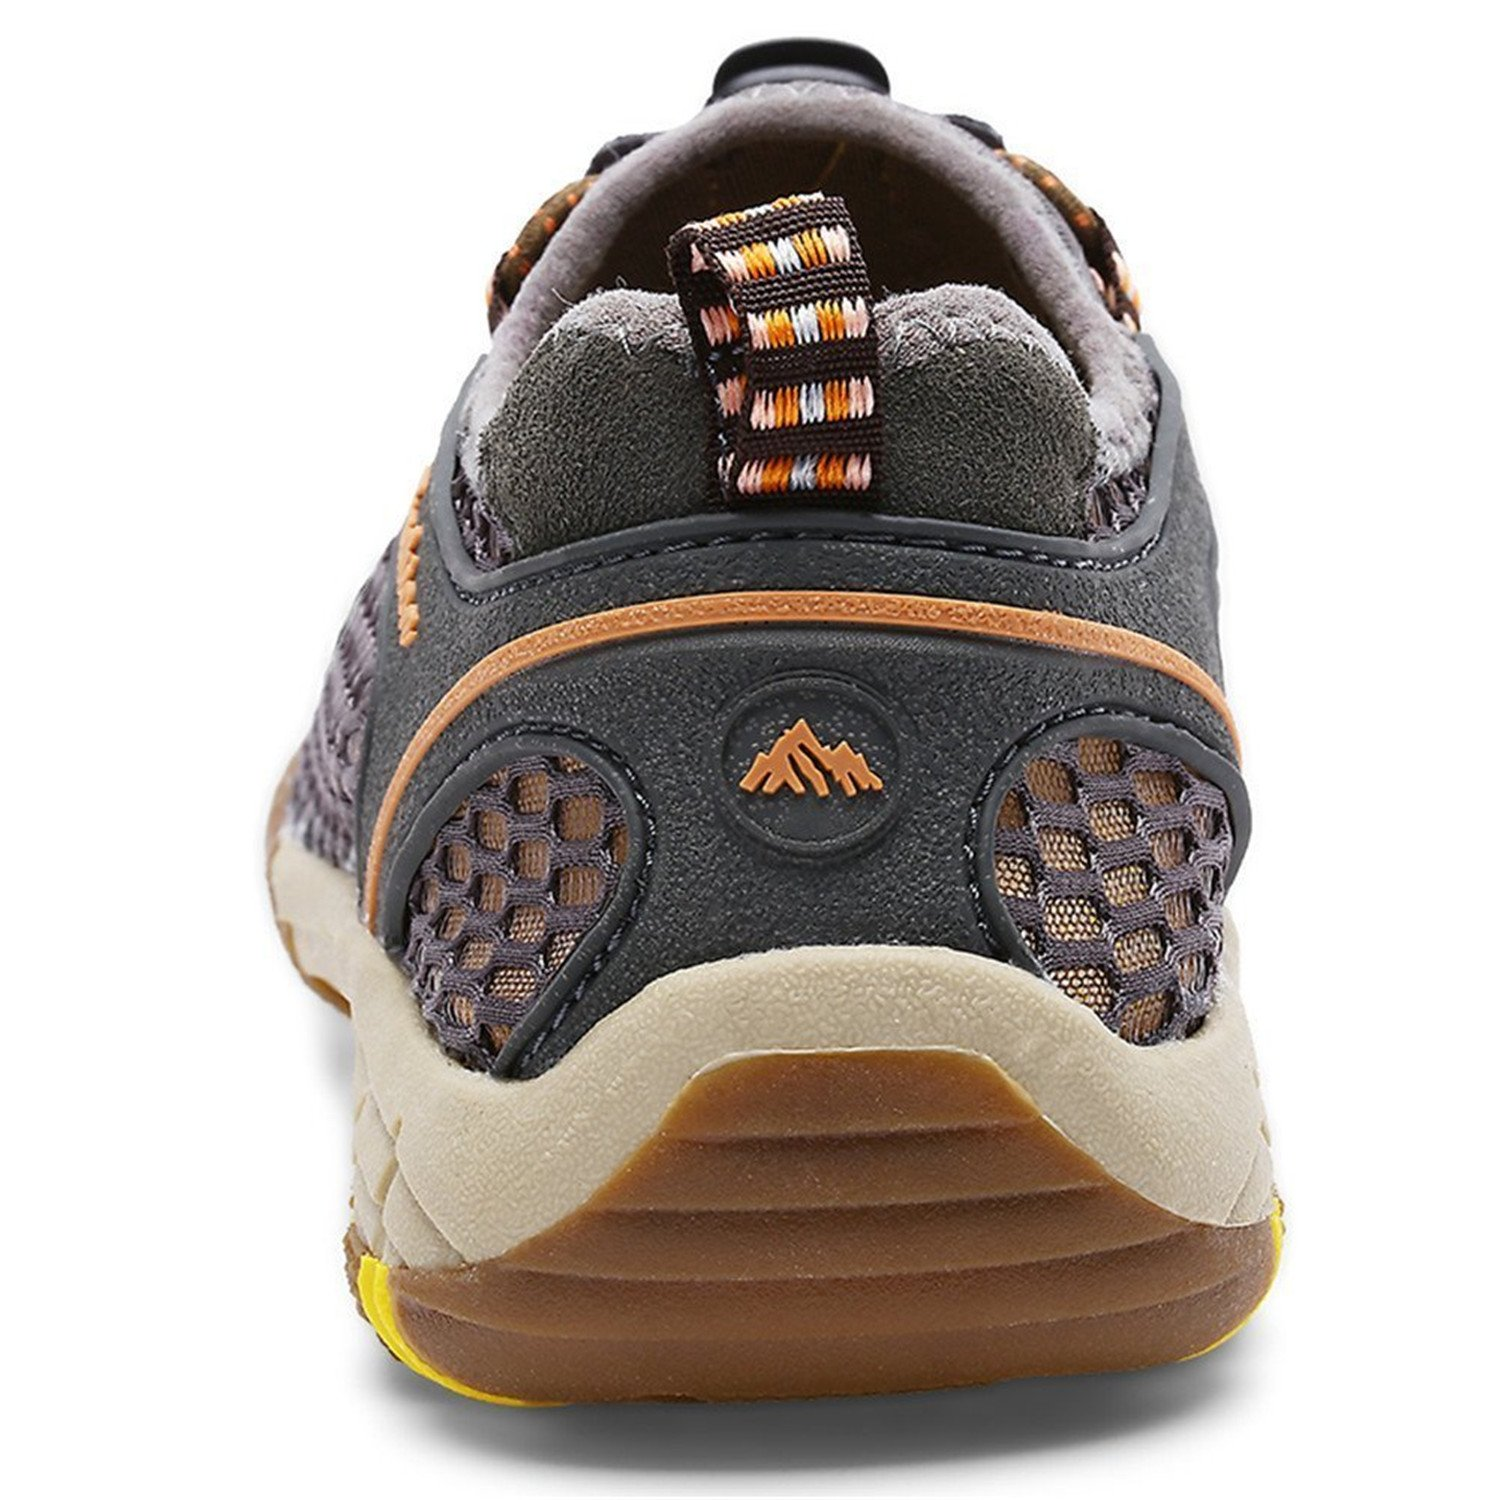 Spearss LightweightMens Fashion Sport Hiking Breathable Mesh Water Quick Drying Shoes Convenient